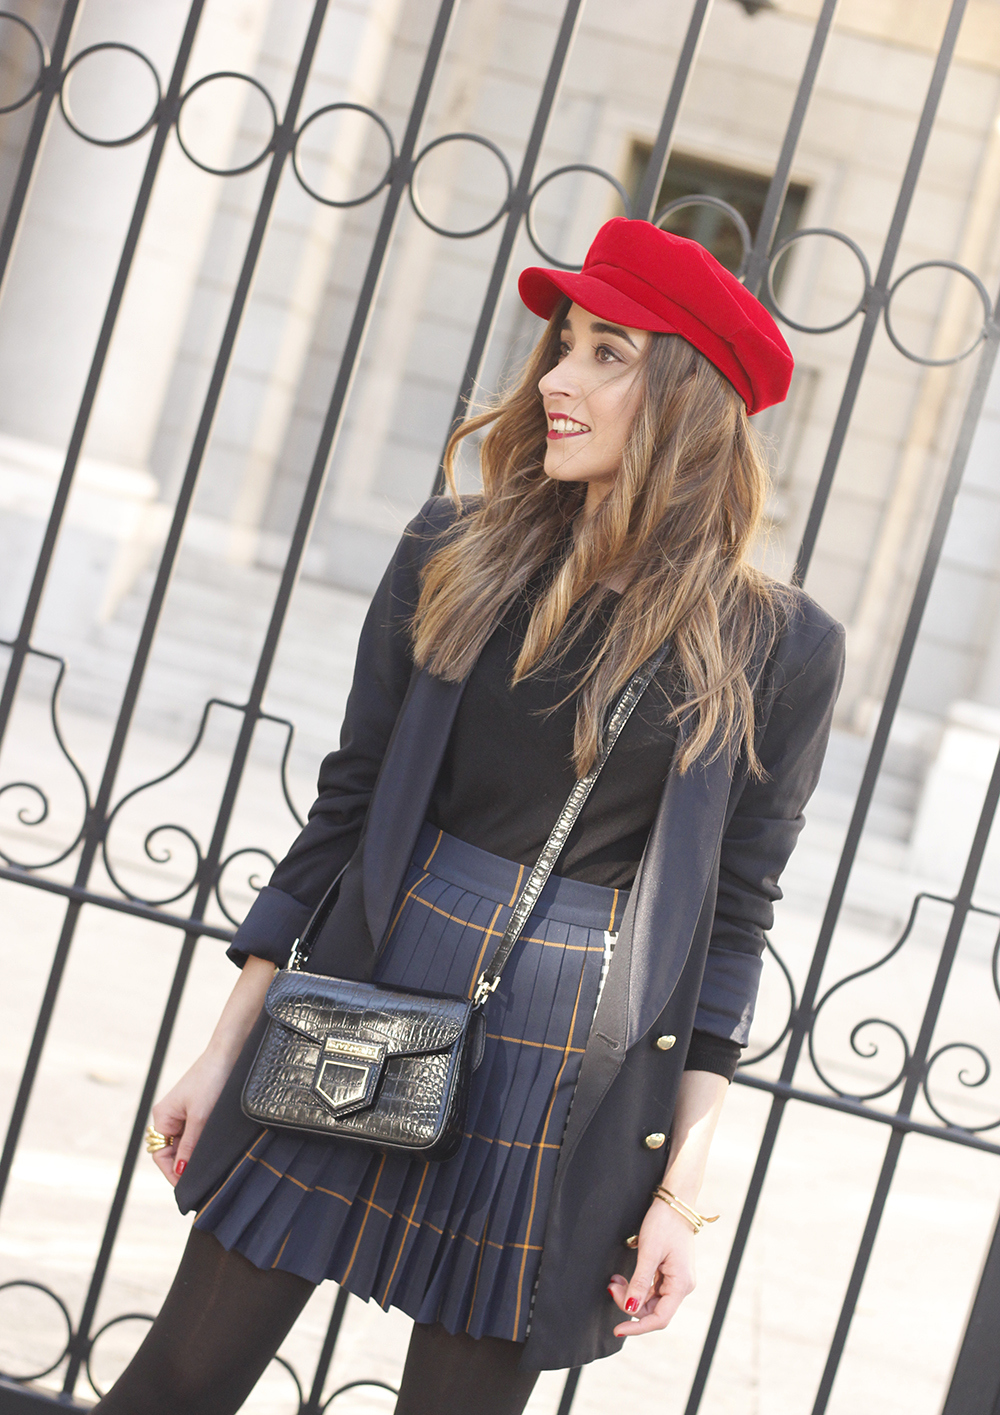 pleated skirt Scottish print Vichy print red navy cap givenchy bag winter outfit falda de tablas look invierno 201809